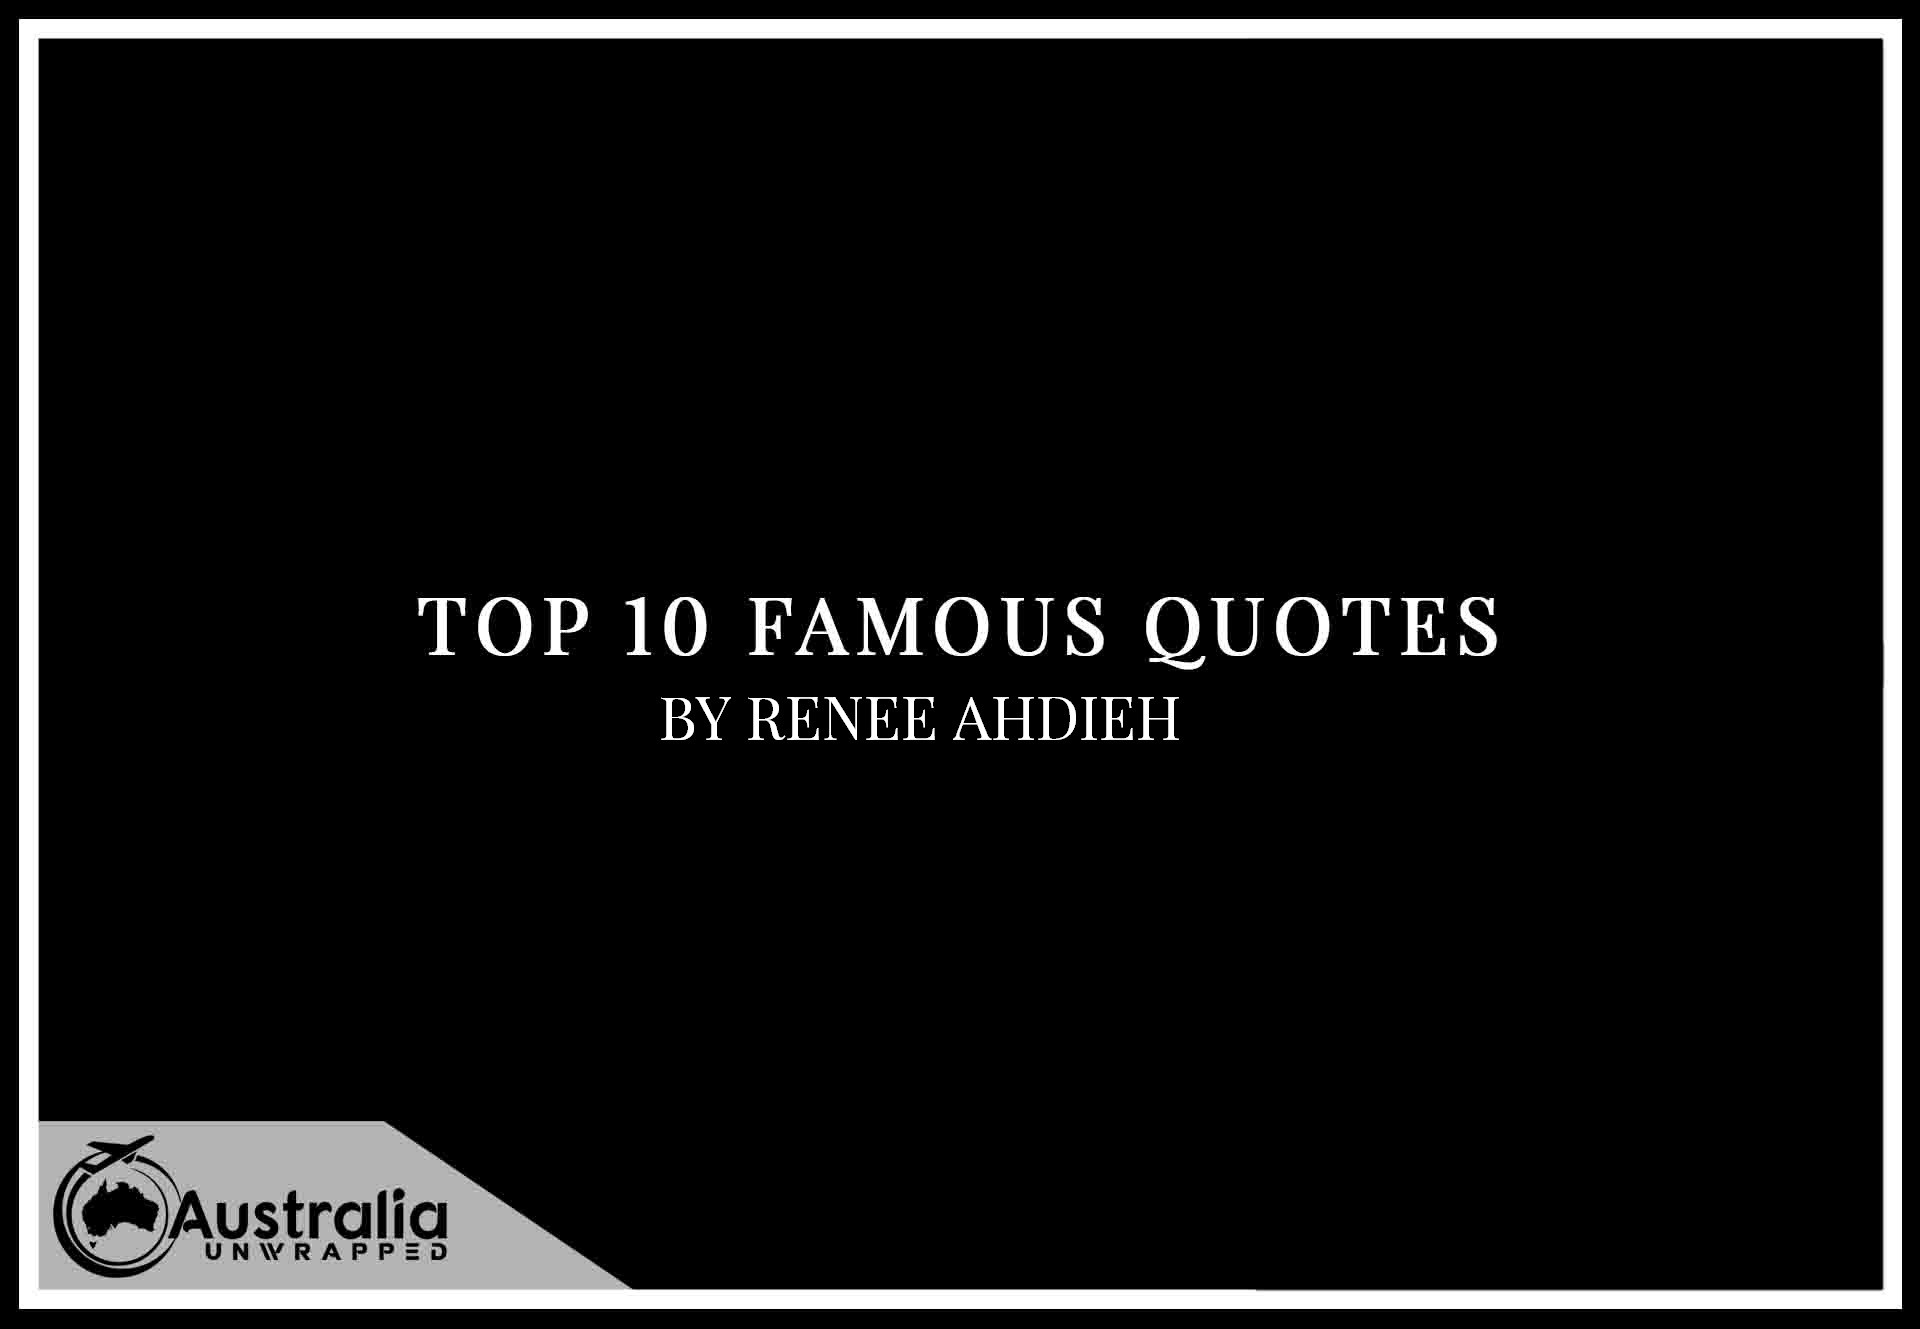 Top 10 Famous Quotes by Author Renee Ahdieh